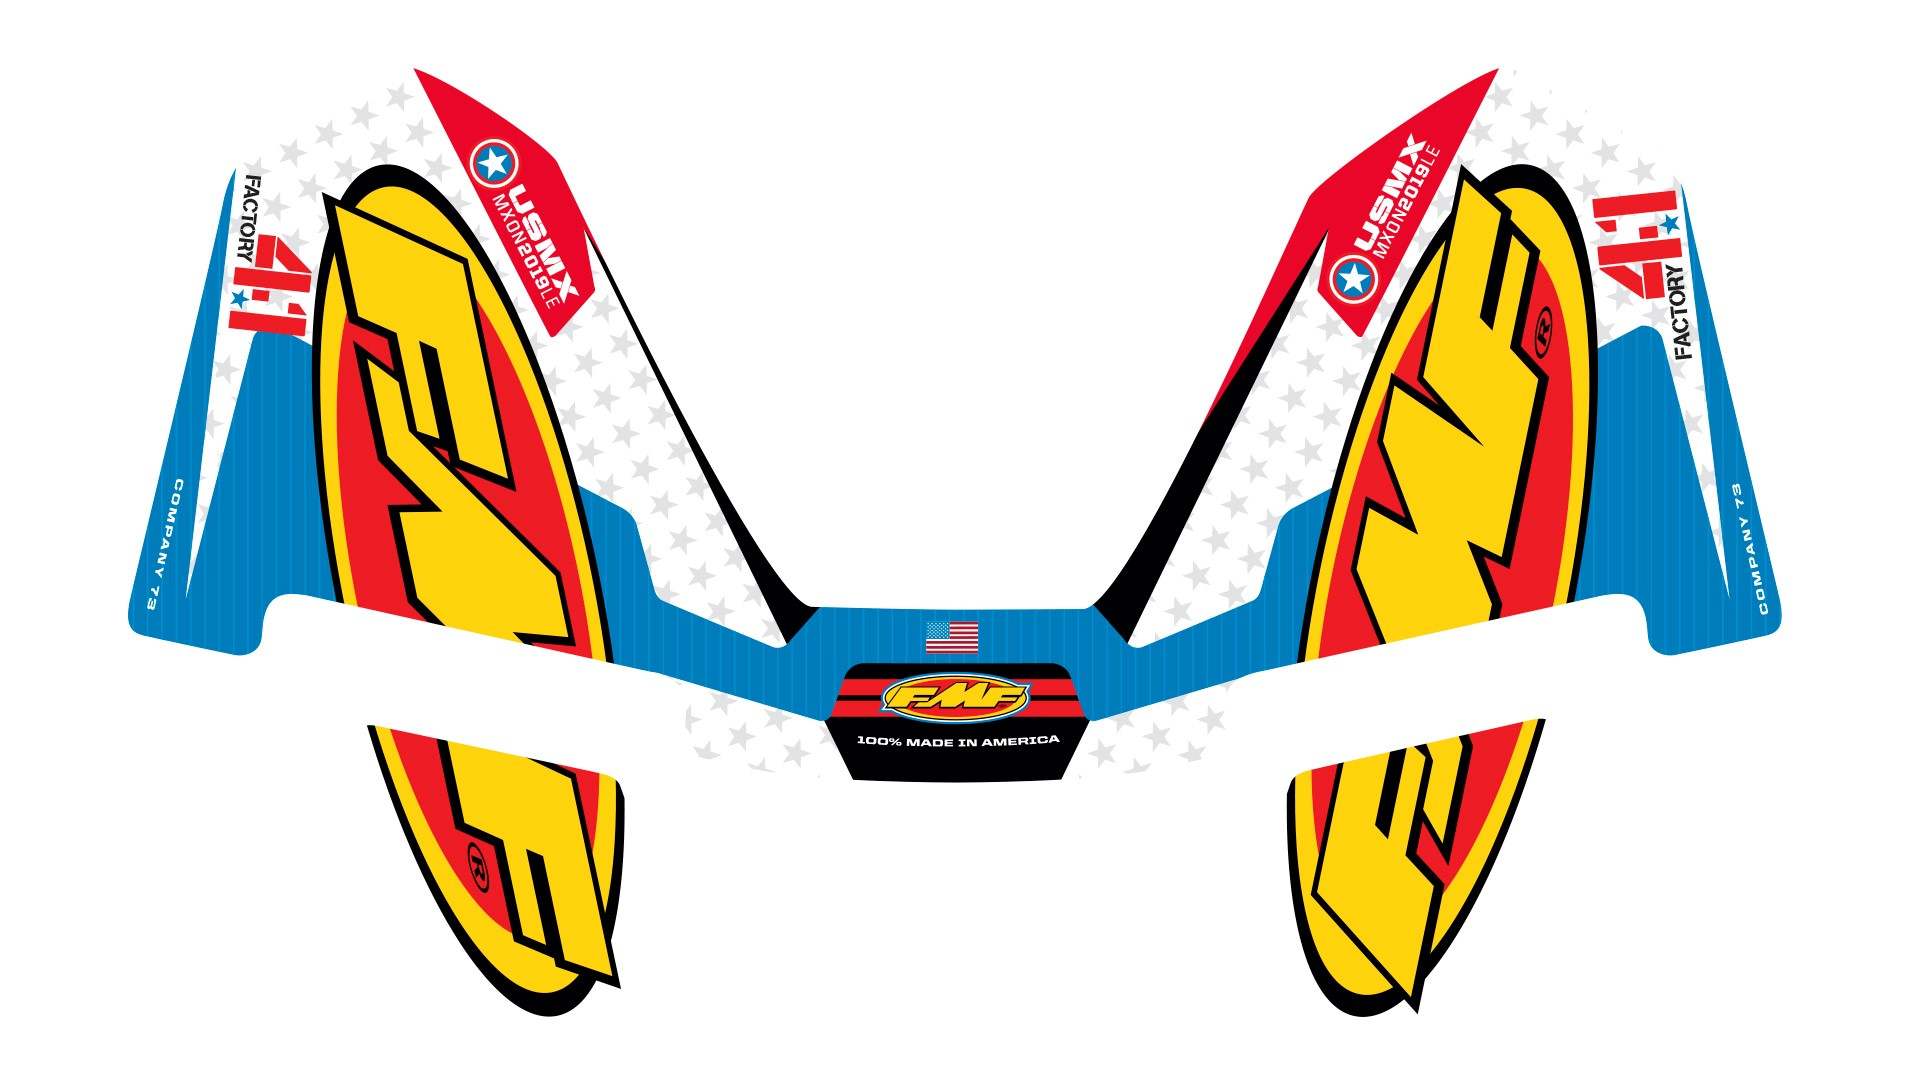 FMF 4.1 MX OF NATIONS WRAP DECAL